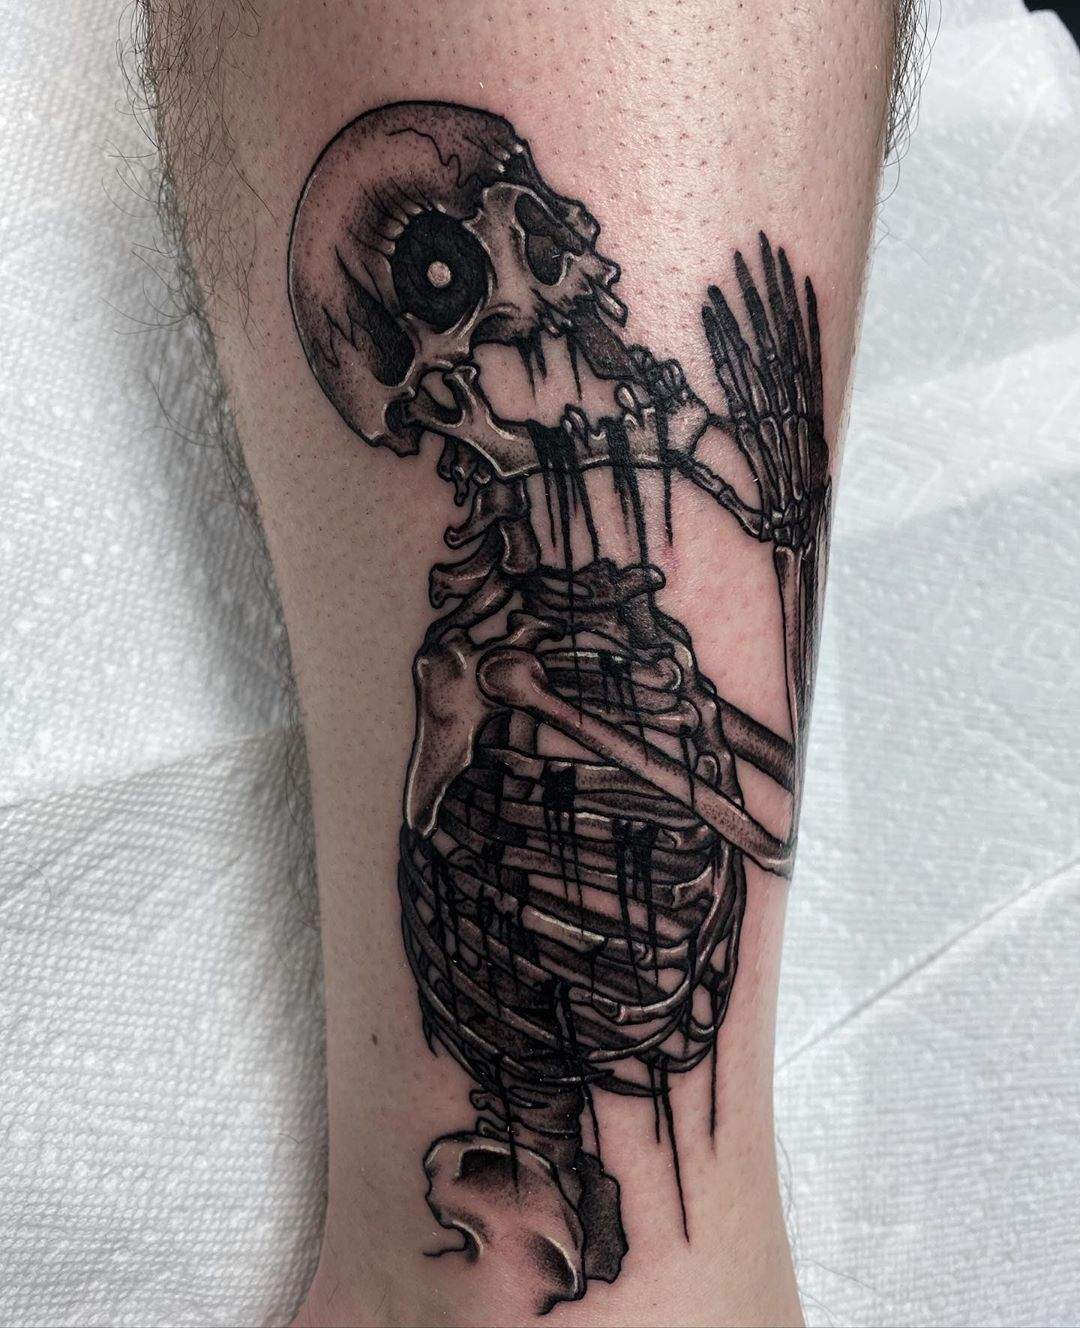 101 Amazing Skeleton Tattoo Ideas That Will Blow Your Mind